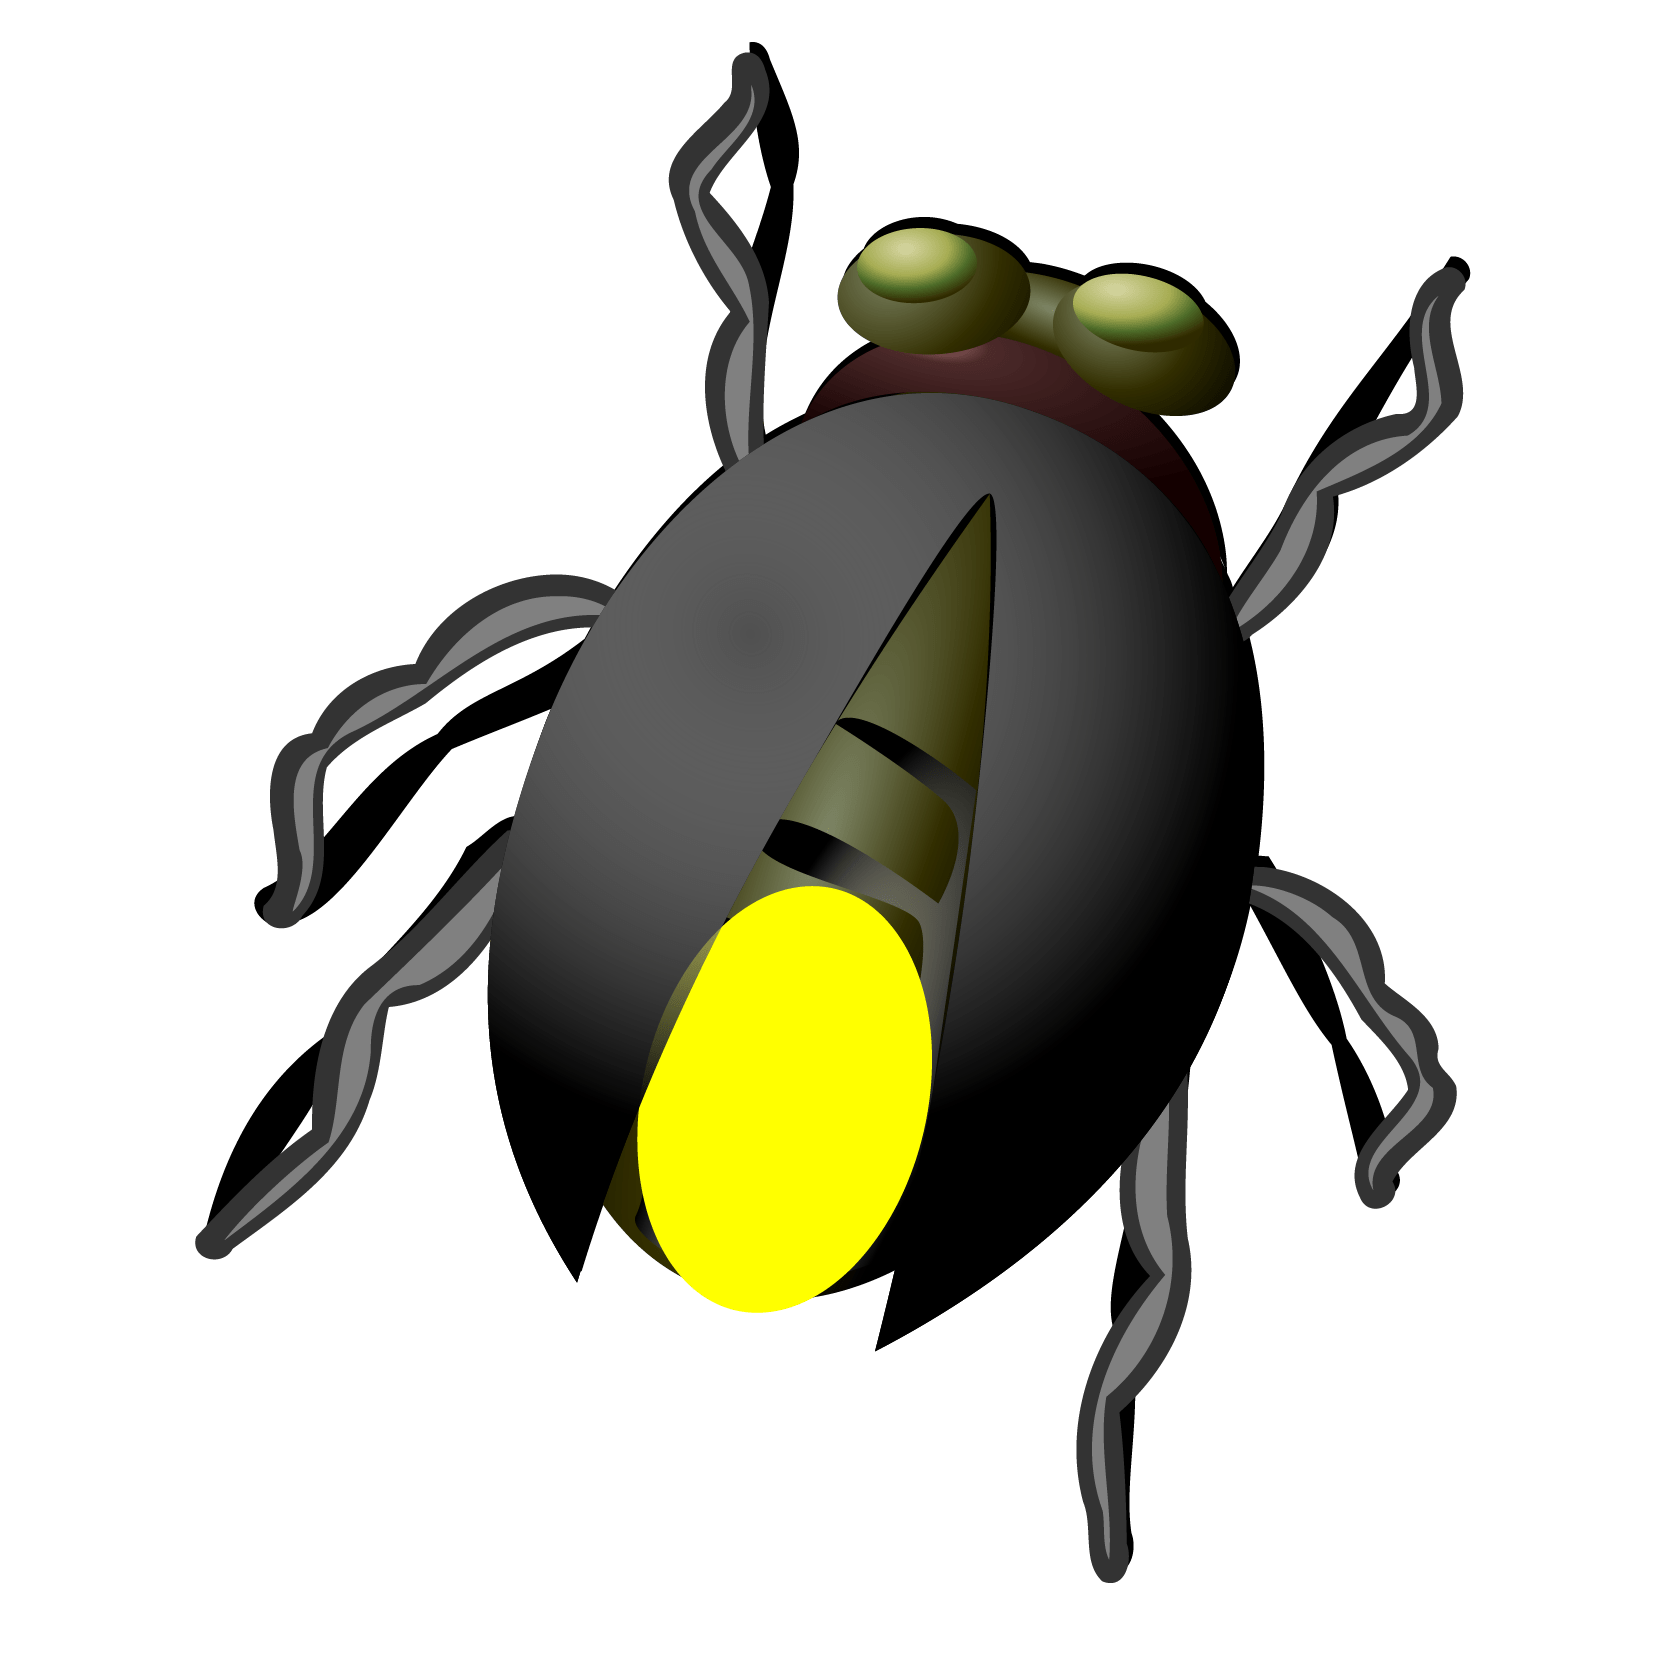 Firefly Clipart Hand Drawn Firefly Hand Drawn Transparent